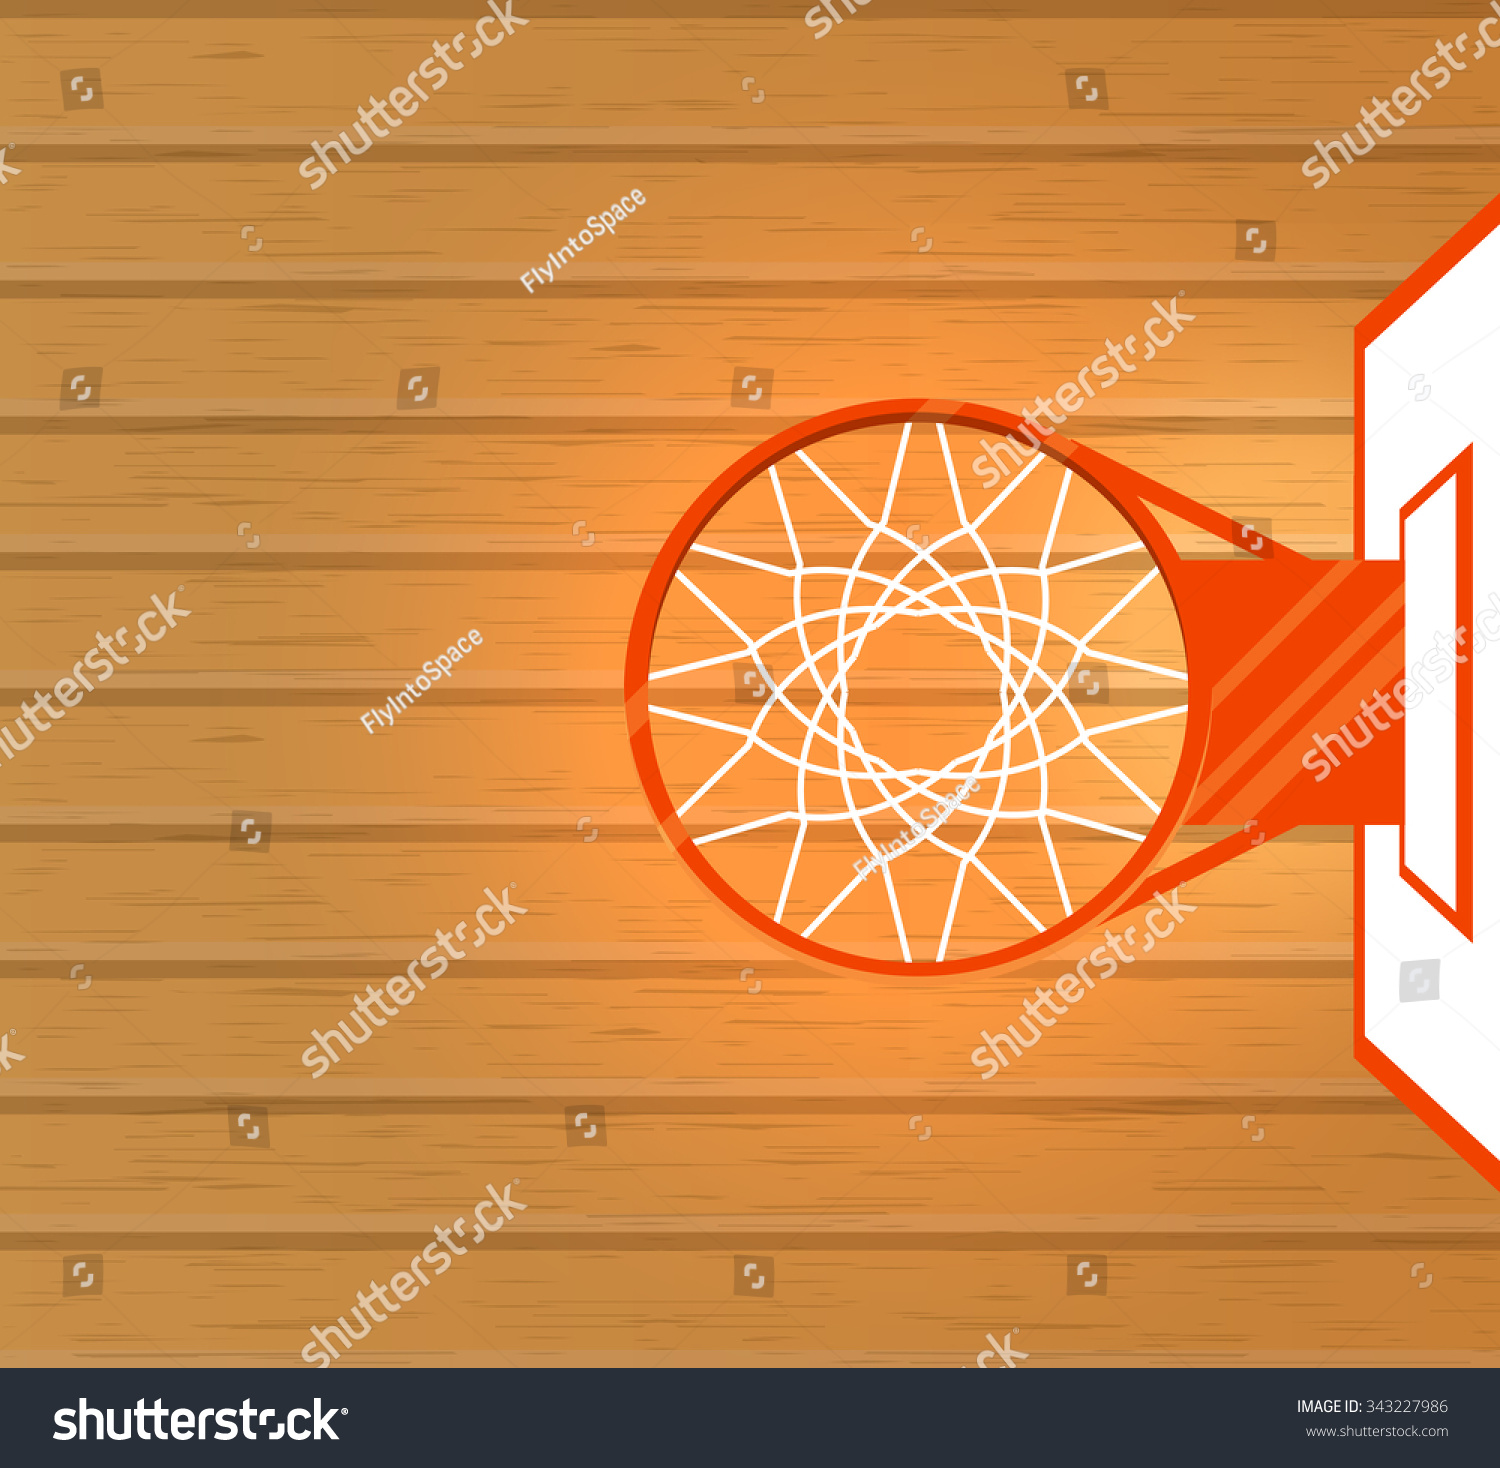 focused of photo stock close floors court up floor basketball empty